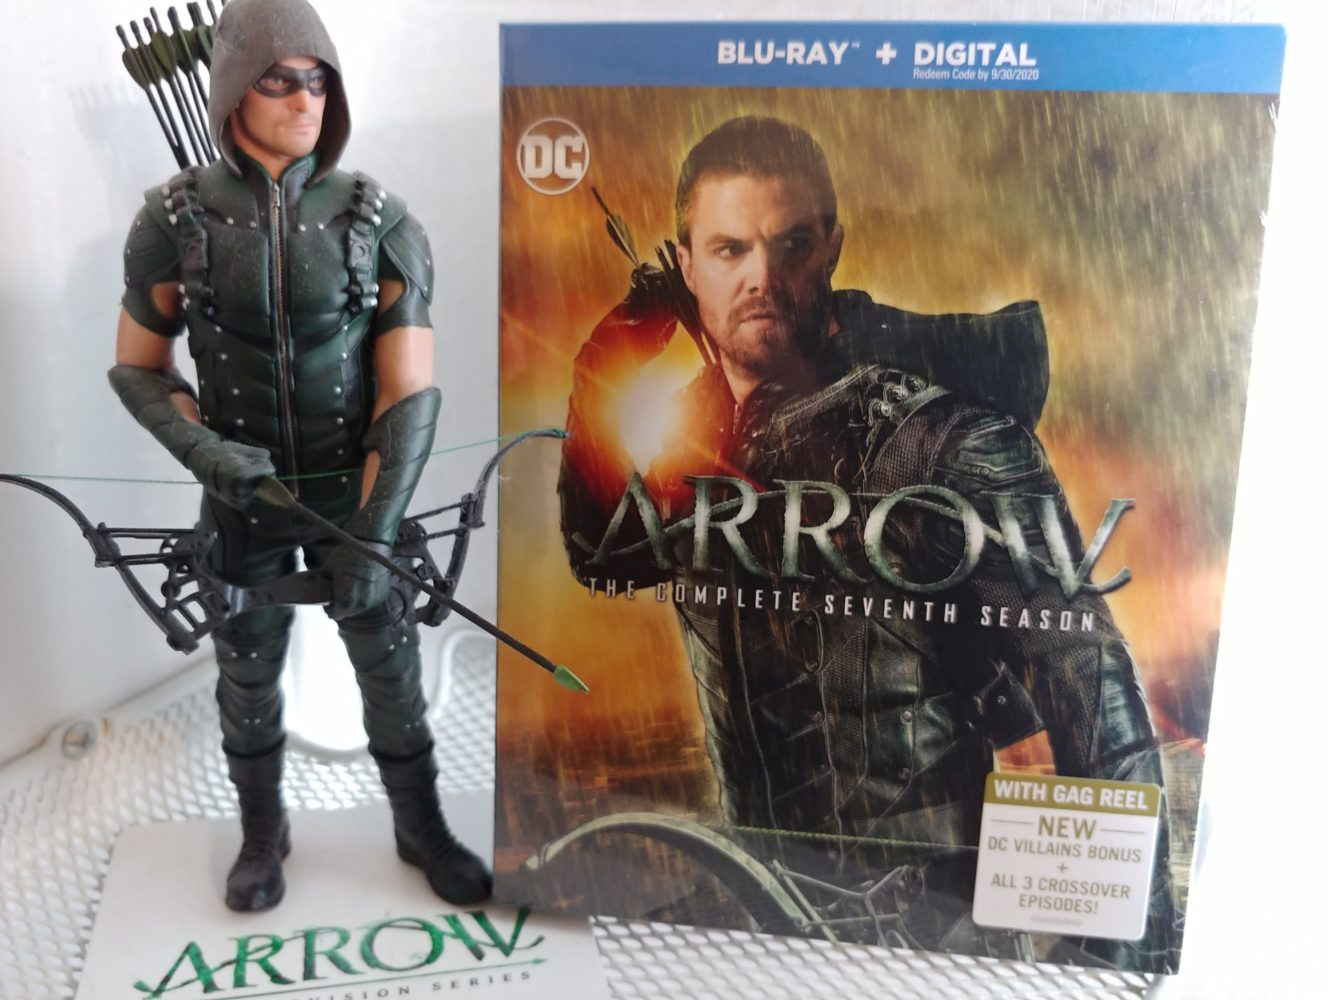 Arrow Season 7 Blu-Ray